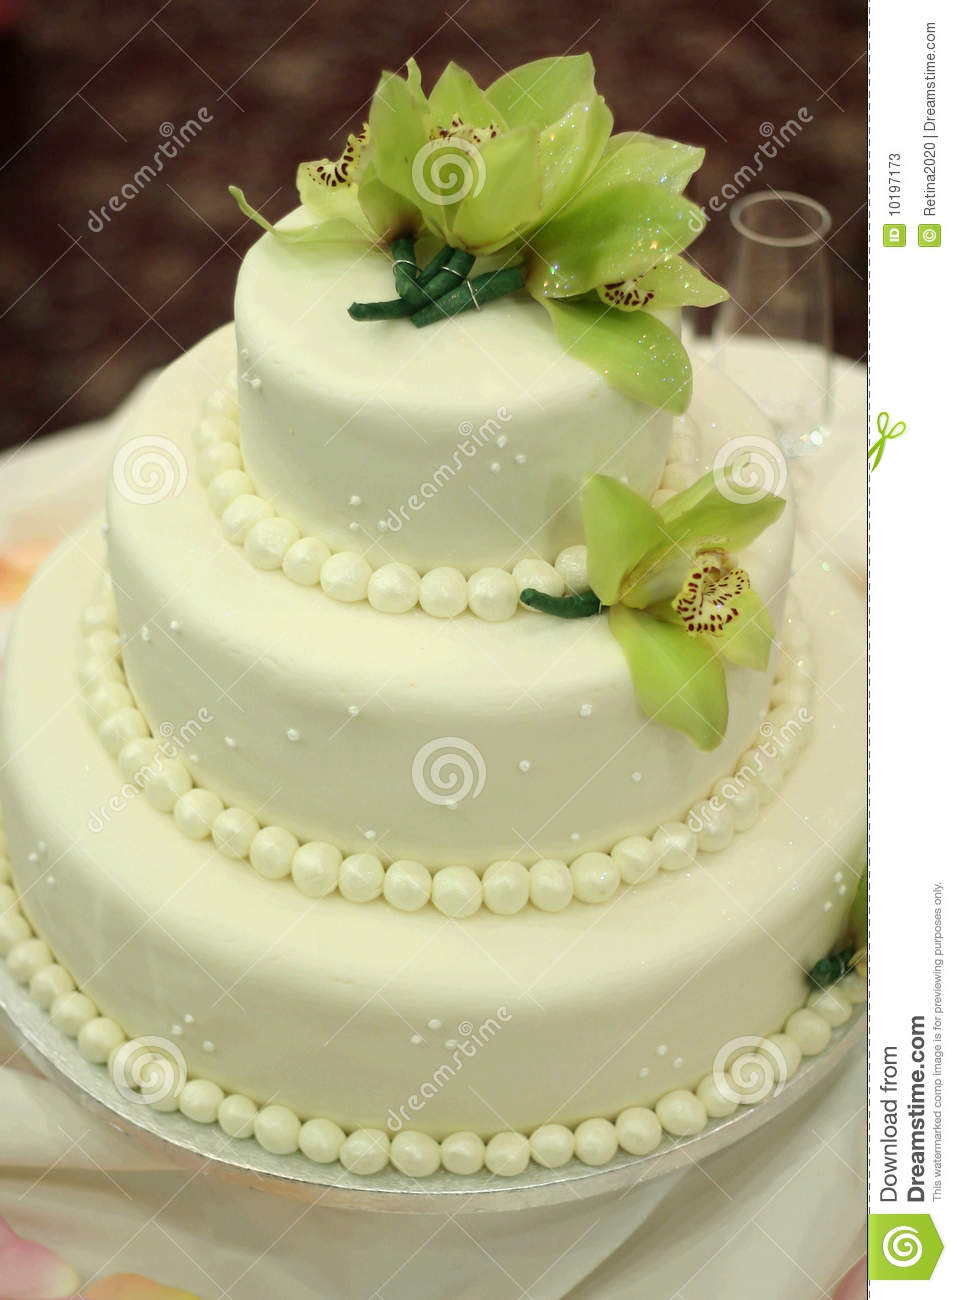 Wedding Cake with Orchids stock image. Image of weddings - 10197173